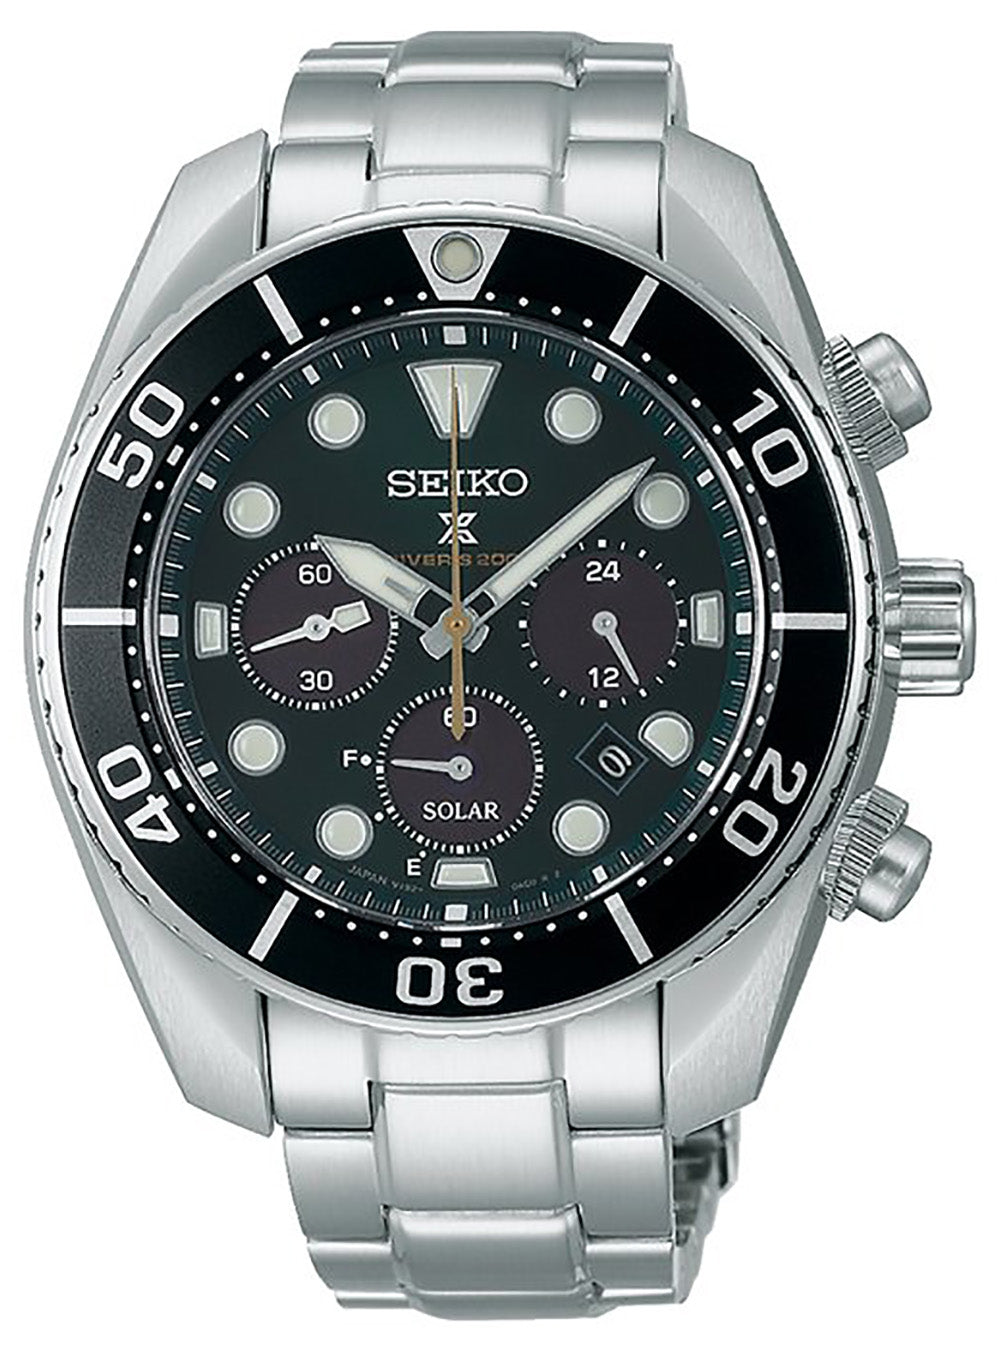 SEIKO PROSPEX DIVER SCUBA 140TH ANNIVERSARY SBDL083 LIMITED EDITION MADE IN JAPAN JDM